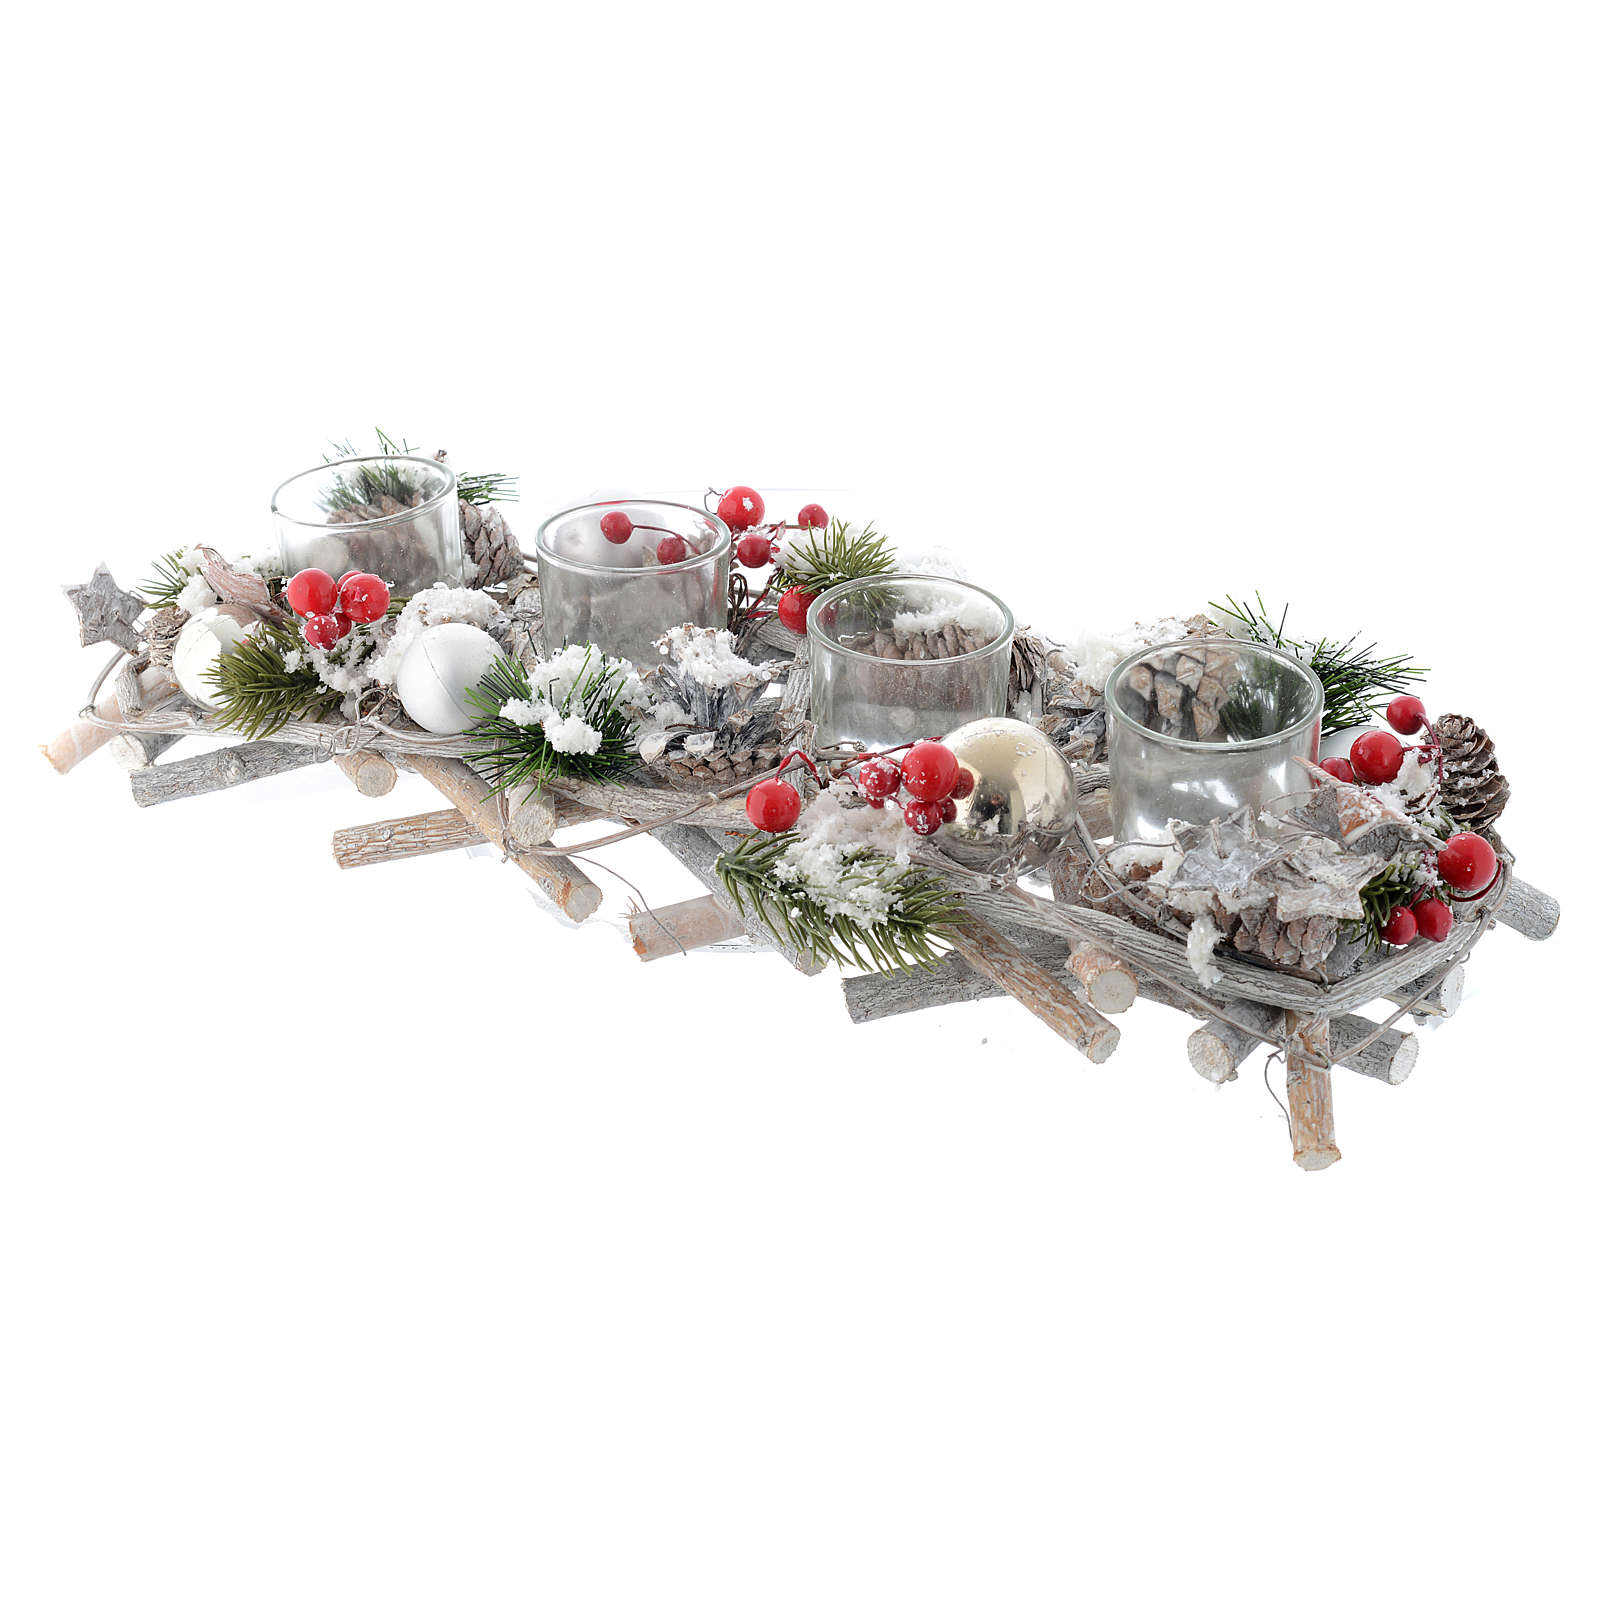 Christmas centrepiece with red berries and 4 glasses 3